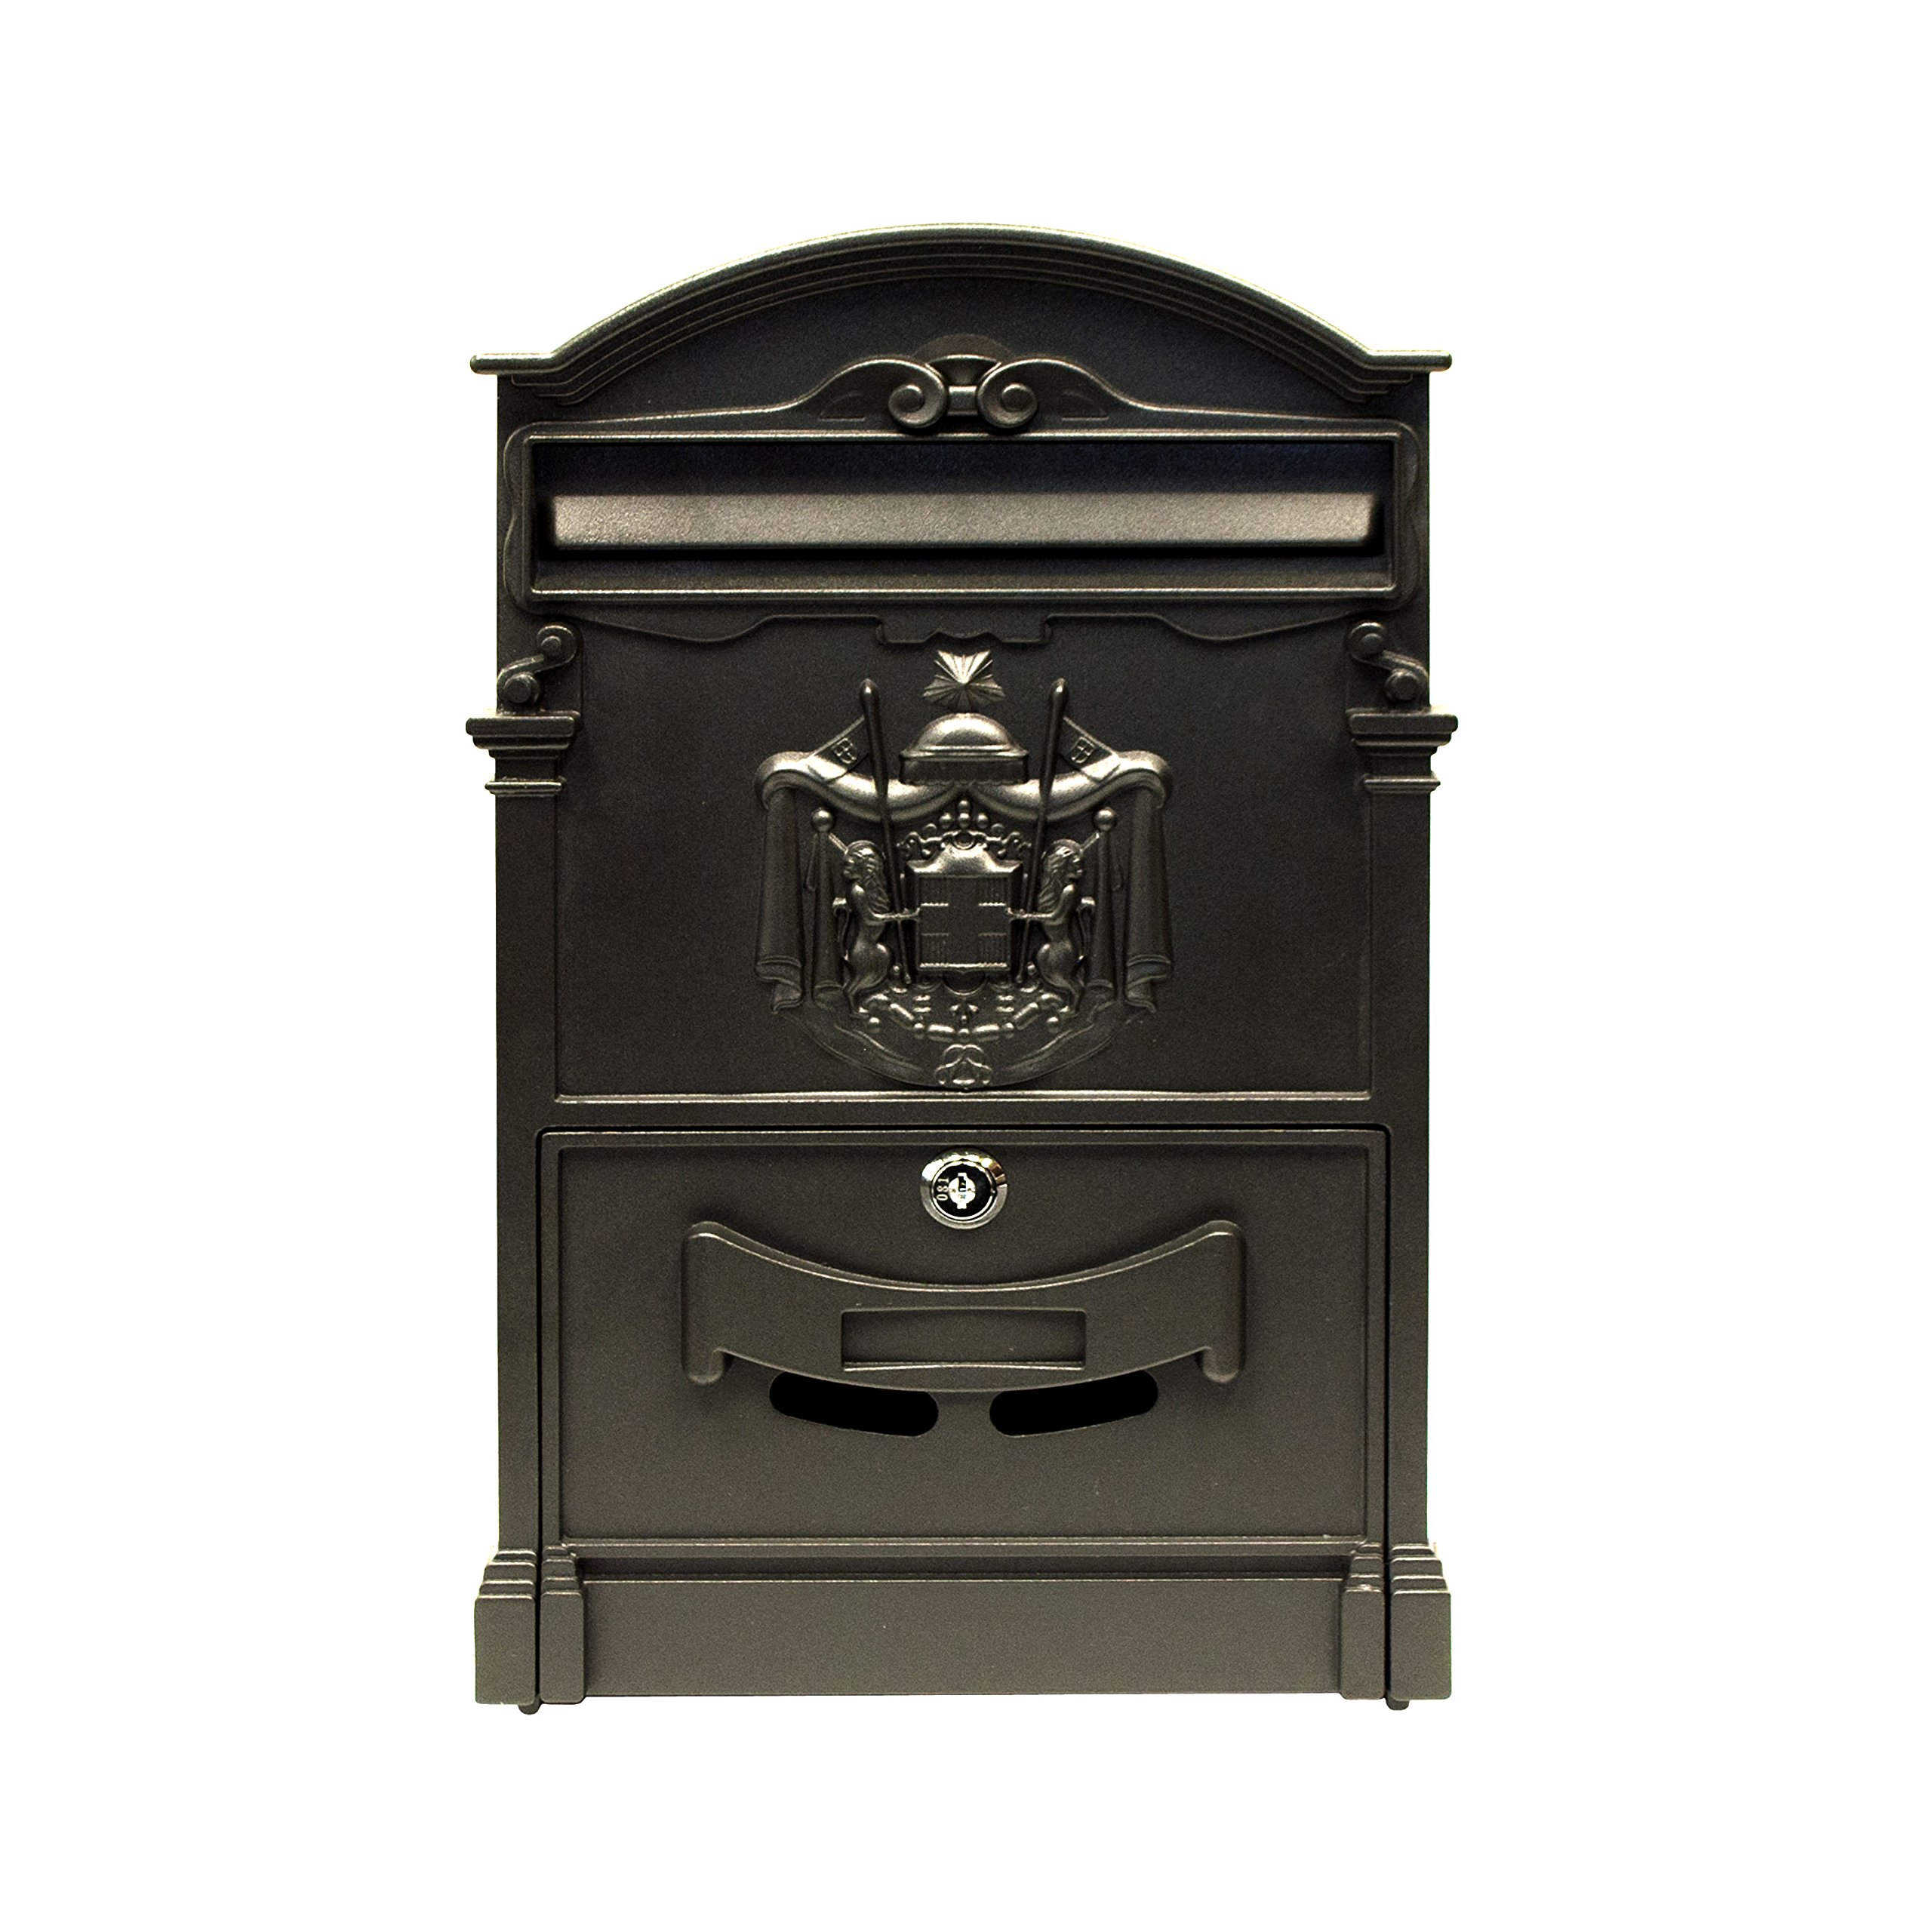 ALEKO USMB-05BK Elegant Wall Mounted Mail Box with Retrieval Door, 2 Keys and Bolts, BLACK